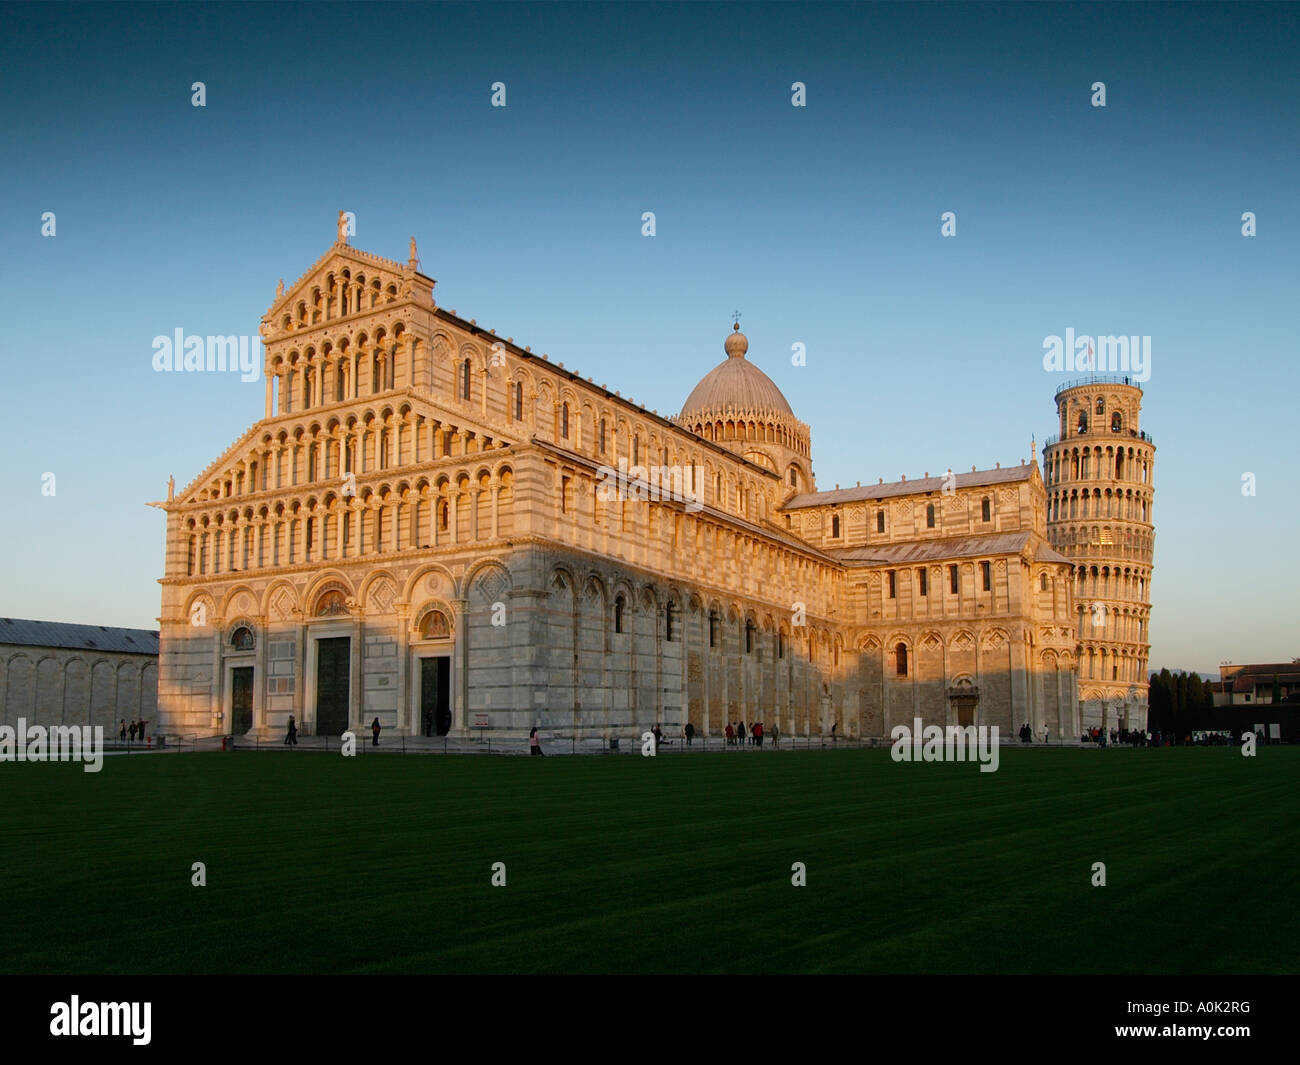 Duomo and the famous Torre pendente leaning tower in late afternoon sunlight Pisa Tuscany Italy Campo dei Miracoli - Stock Image